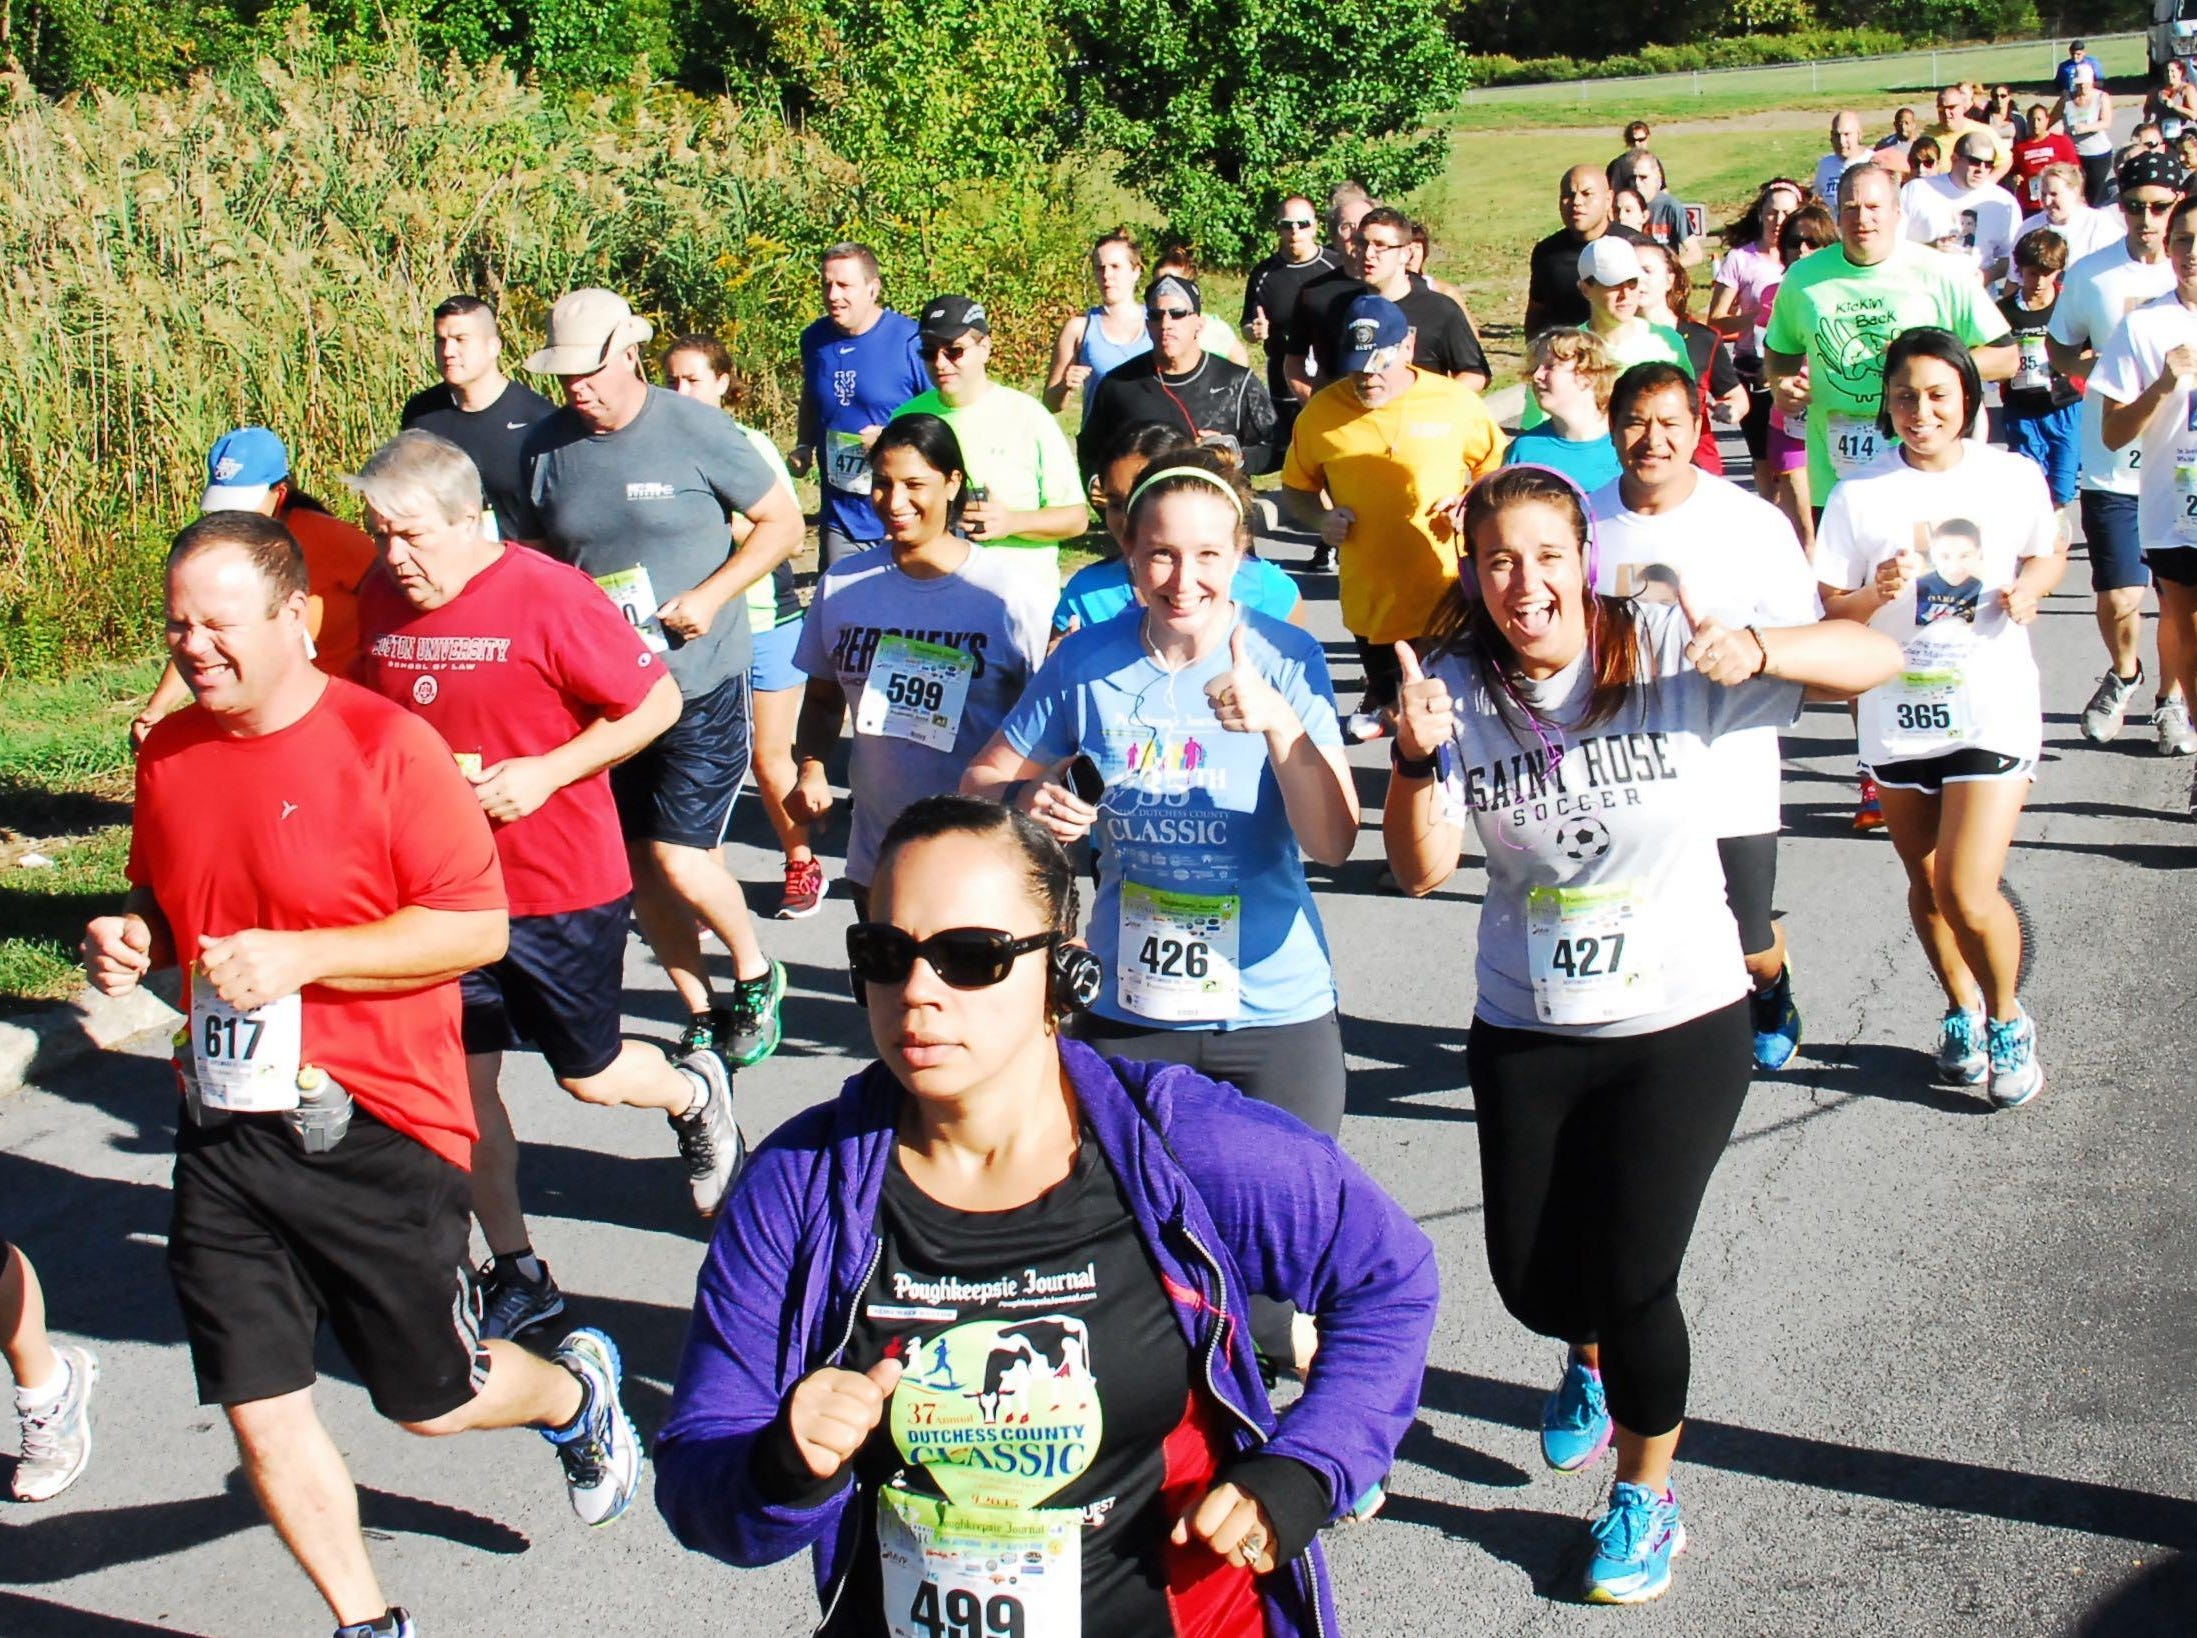 Runners take part in the 2015 Dutchess County Classic.